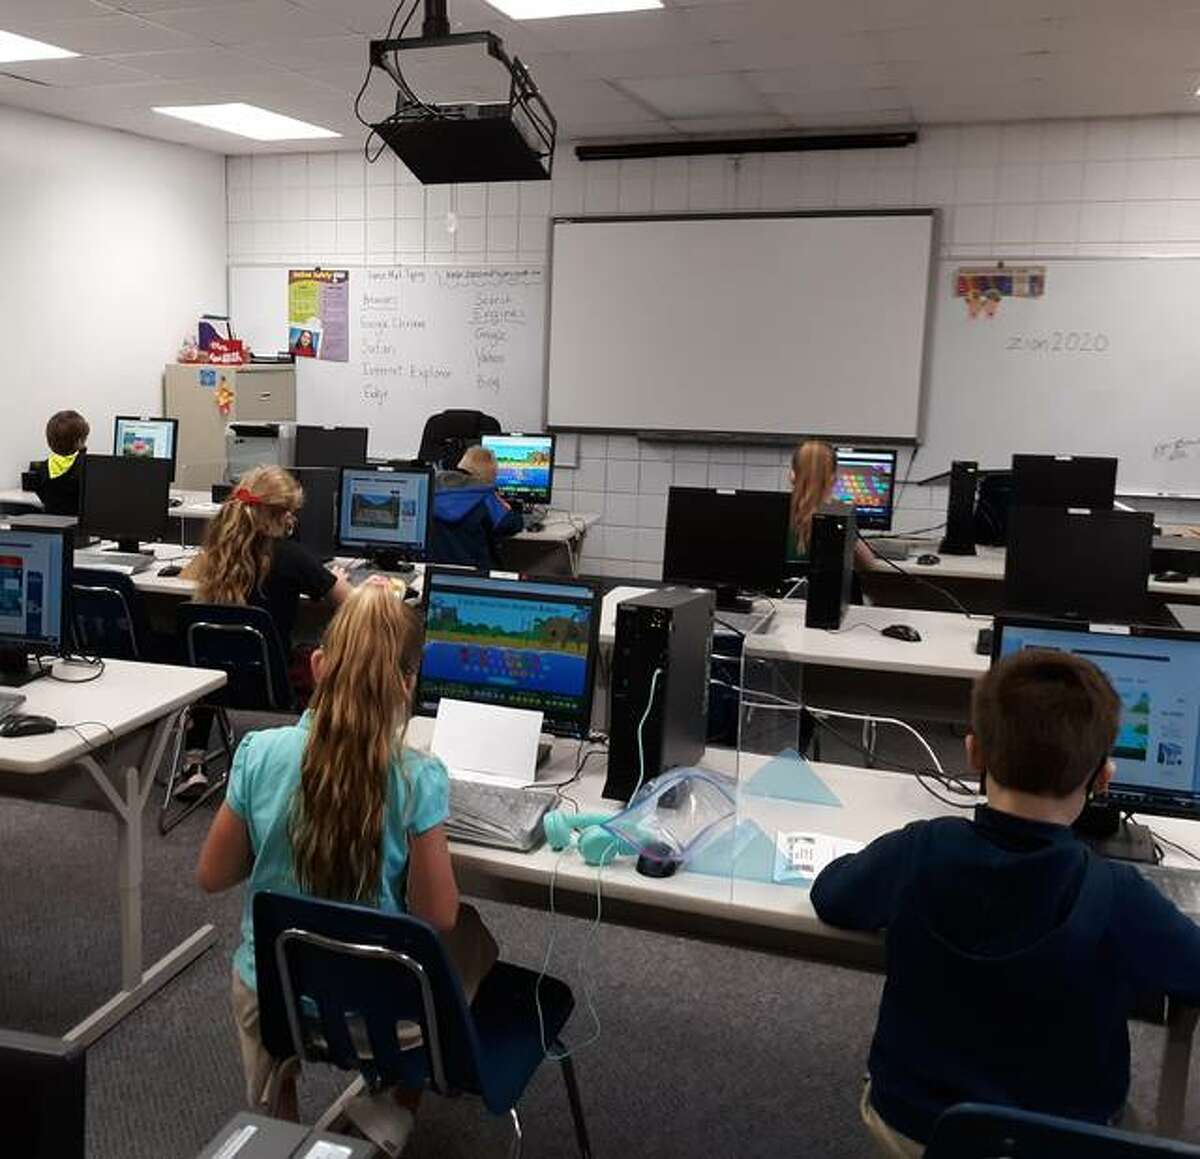 Third grade students at Zion Lutheran School are shown in a computer lab. STEM education is part of all grades, from keyboarding in kindergarten to 3-D printing in 8th grade.